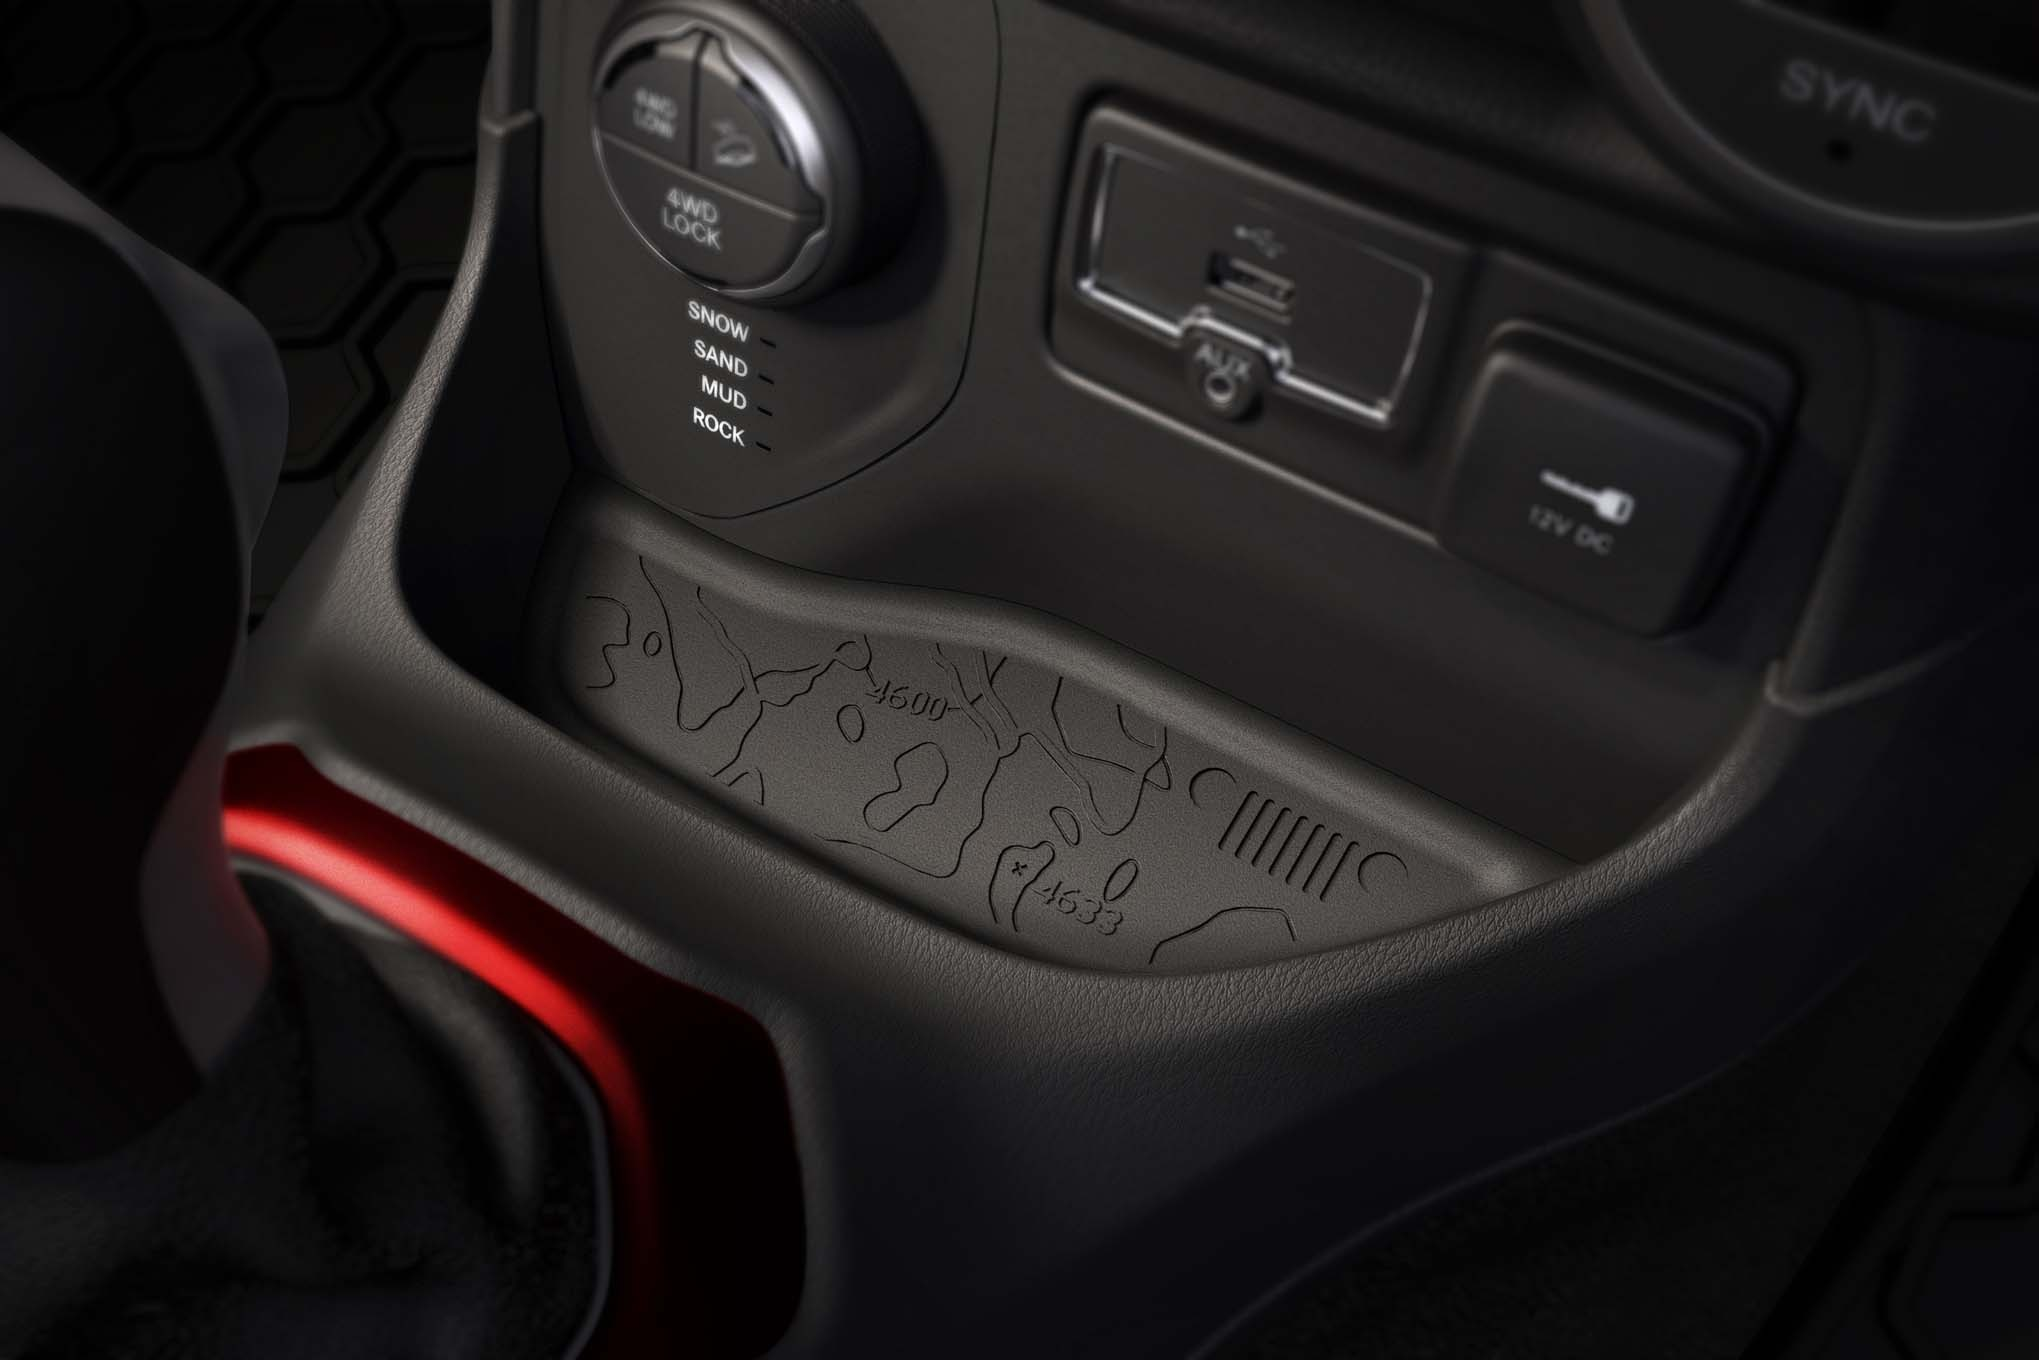 2015 Jeep Renegade Trailhawk usb ports